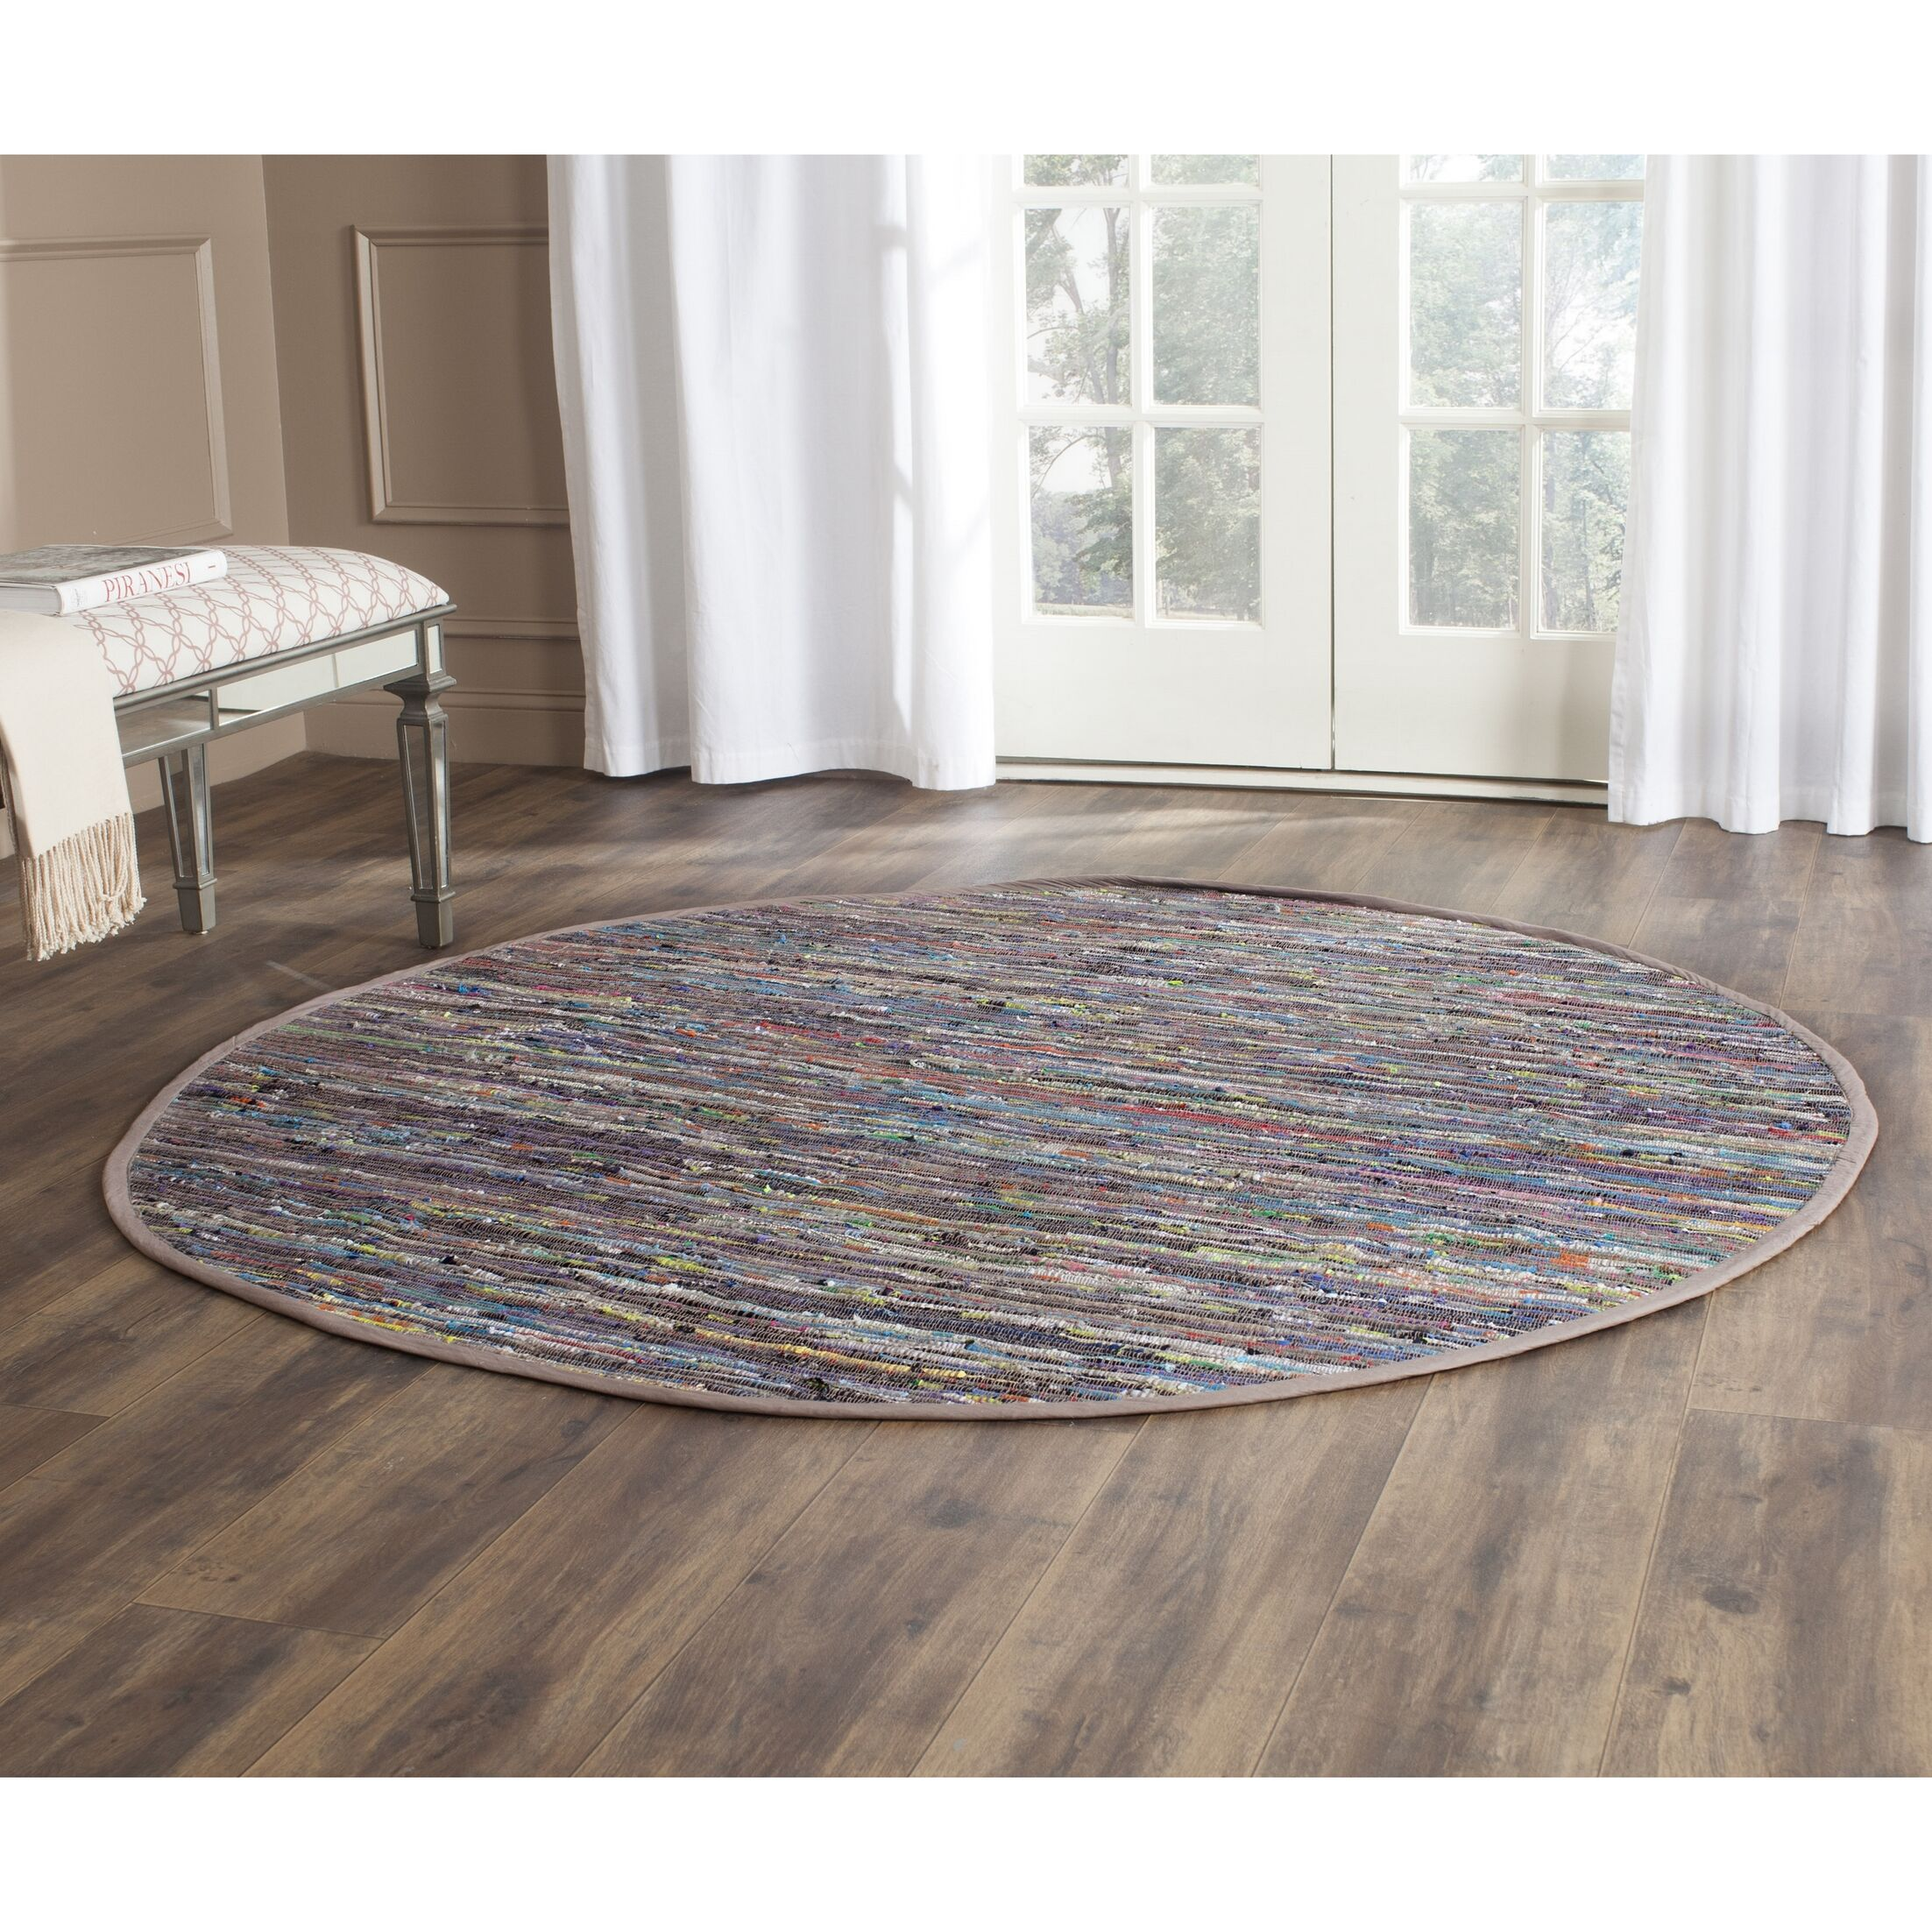 Hatteras Contemporary Hand-Woven Grey/Red/Green Area Rug Rug Size: Round 6'